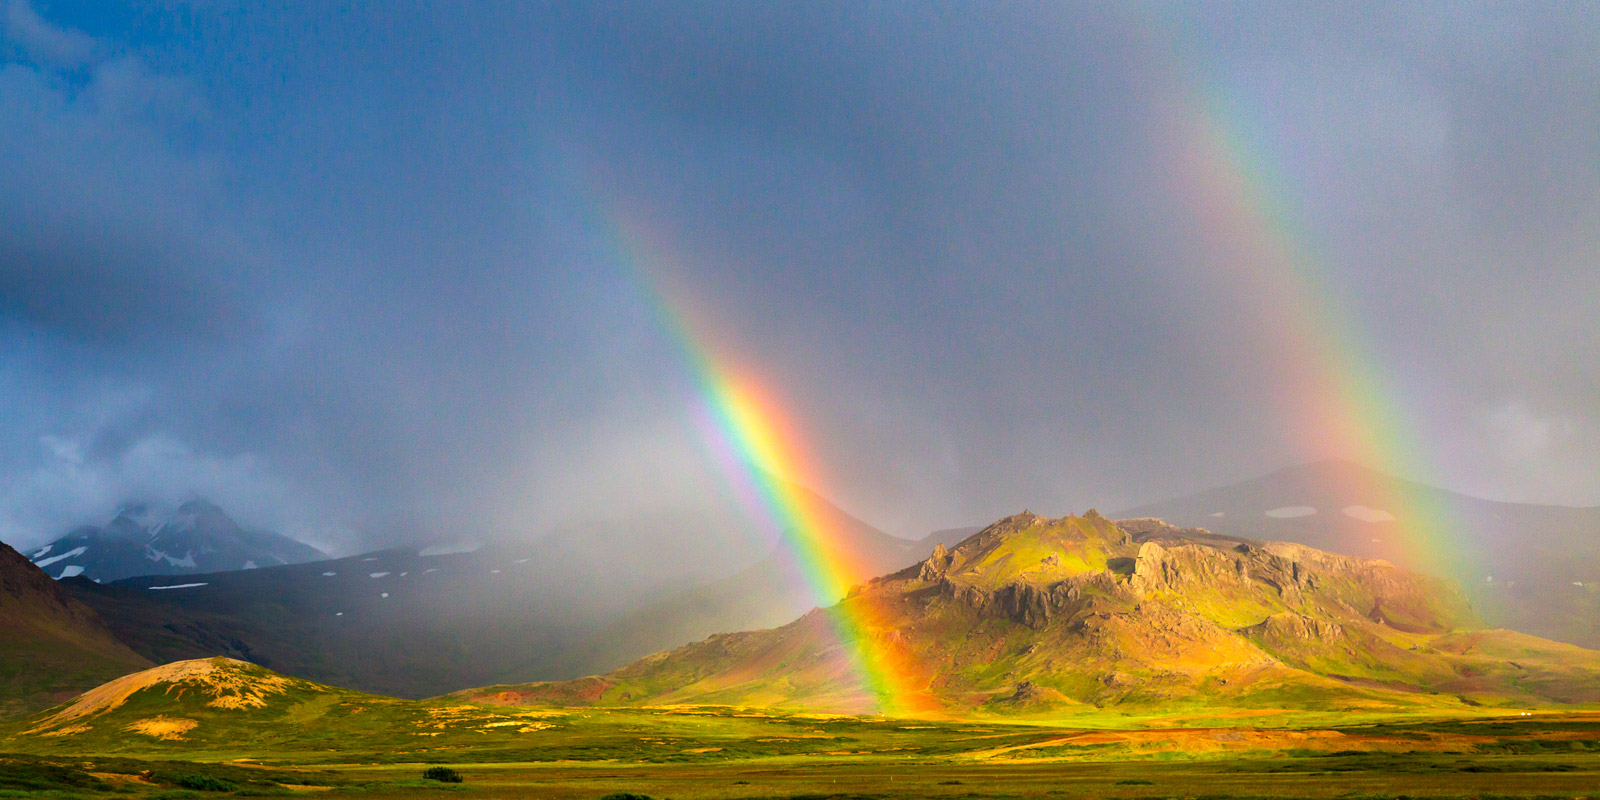 A Limited Edition, Fine Art photograph of a beautiful double rainbow over the mountains in Western Iceland.  Available as a Fine...